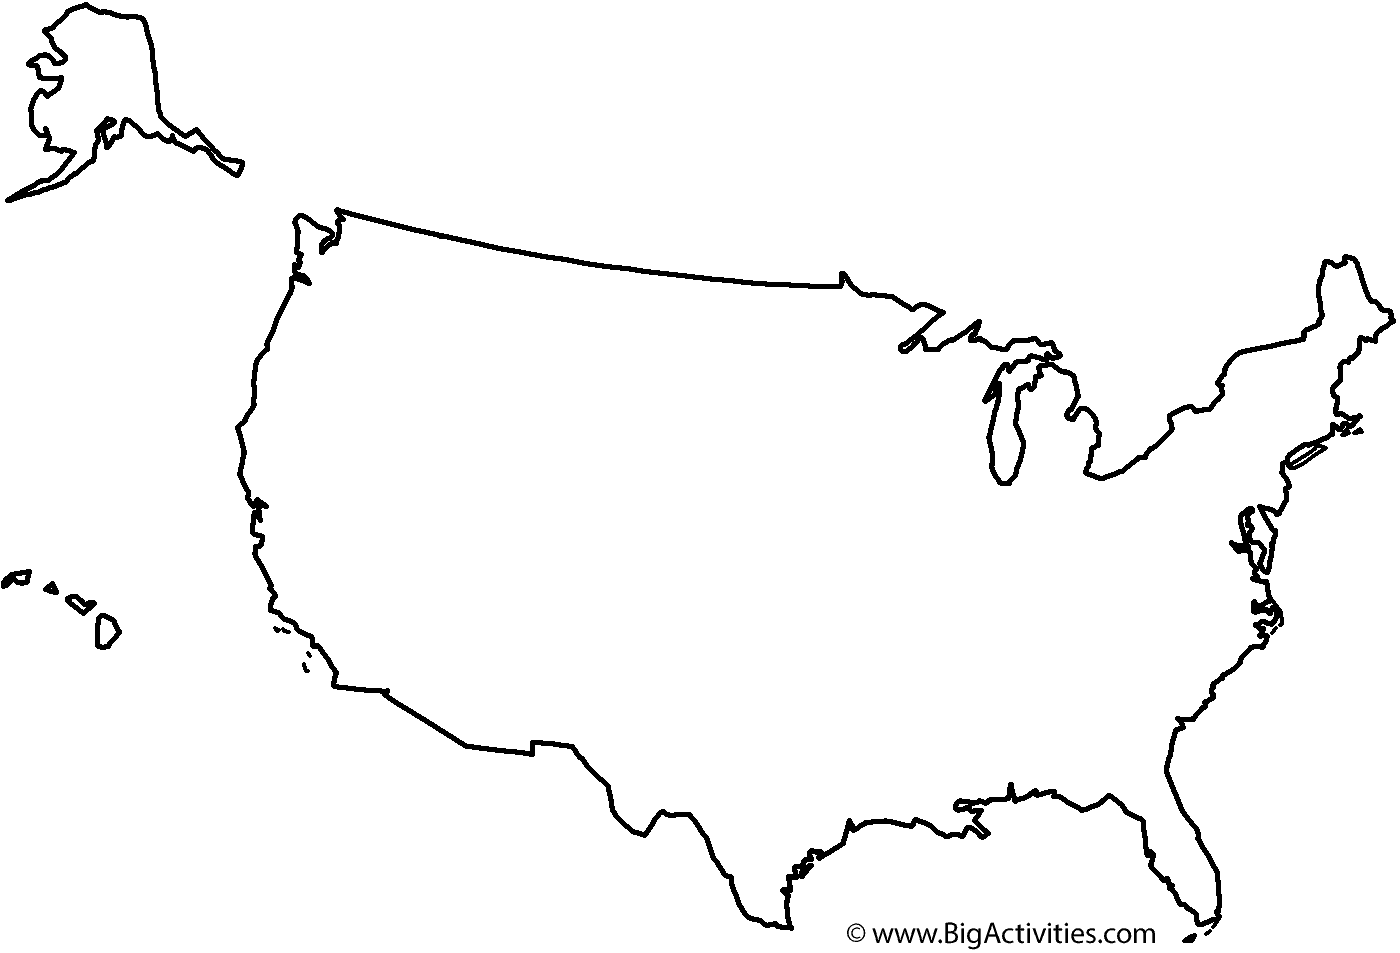 coloring page map of the united states 13 free printable usa travel maps for your bullet journal map of coloring states united the page